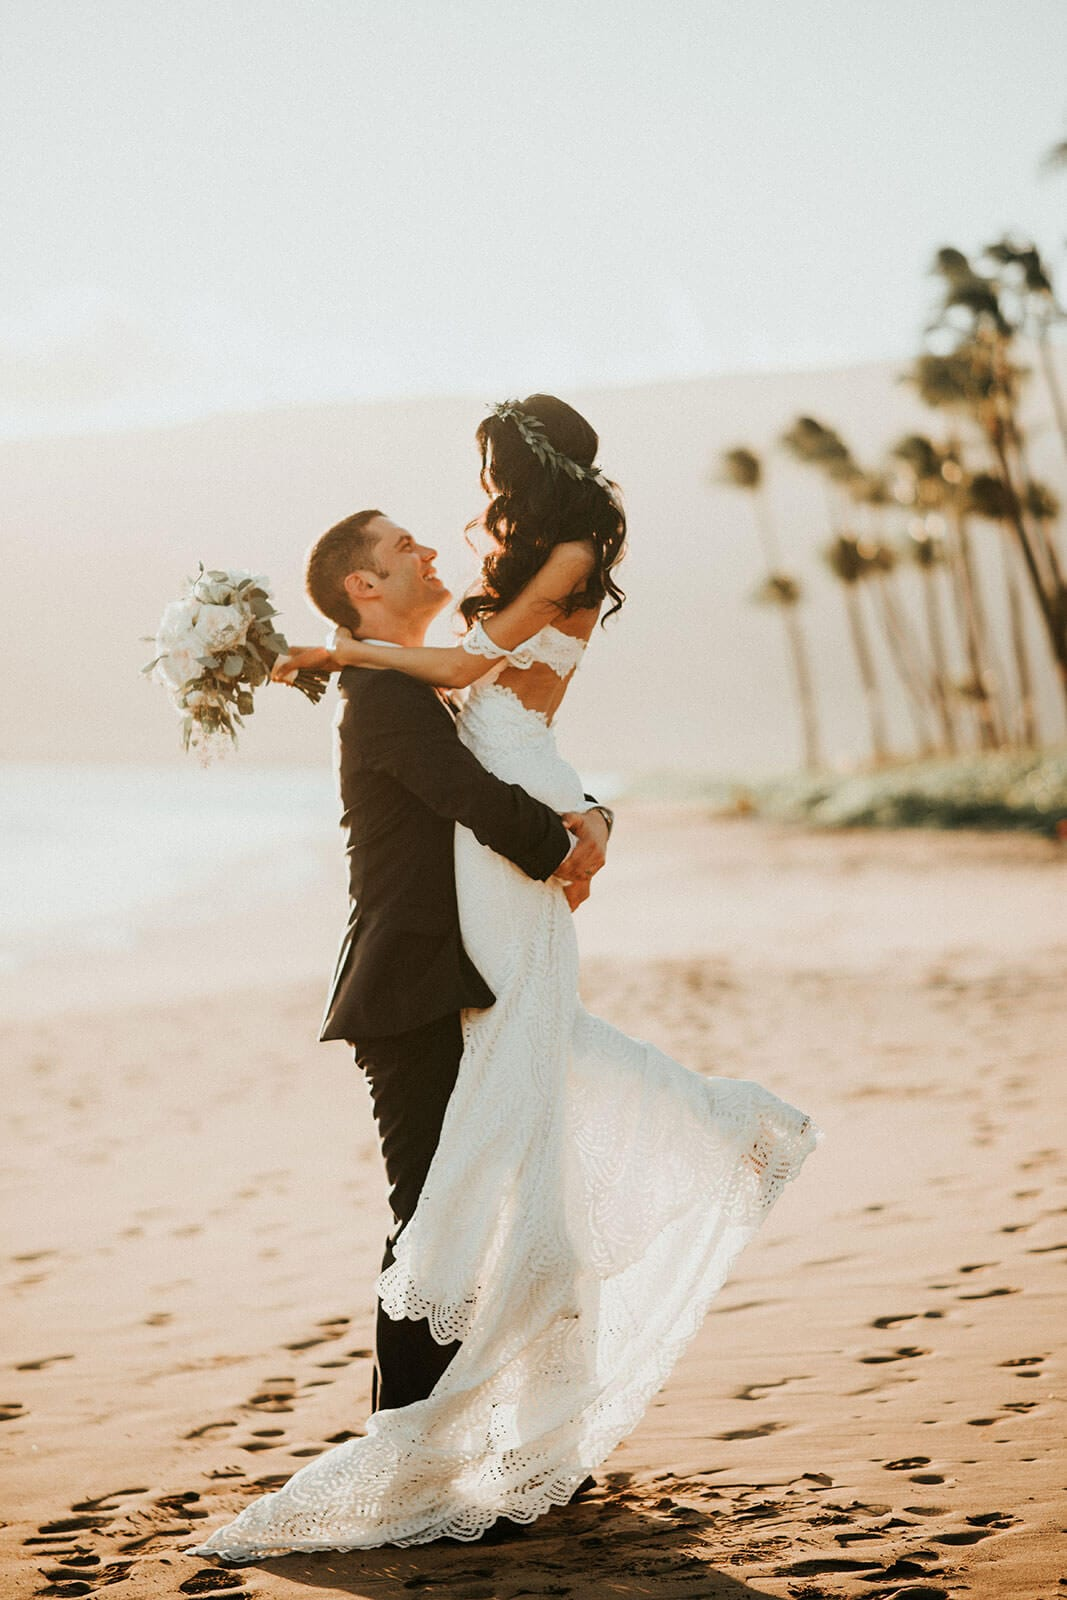 Brunette bride wearing Grace Loves Lace Paloma Gown being held by groom on beach holding bouquet